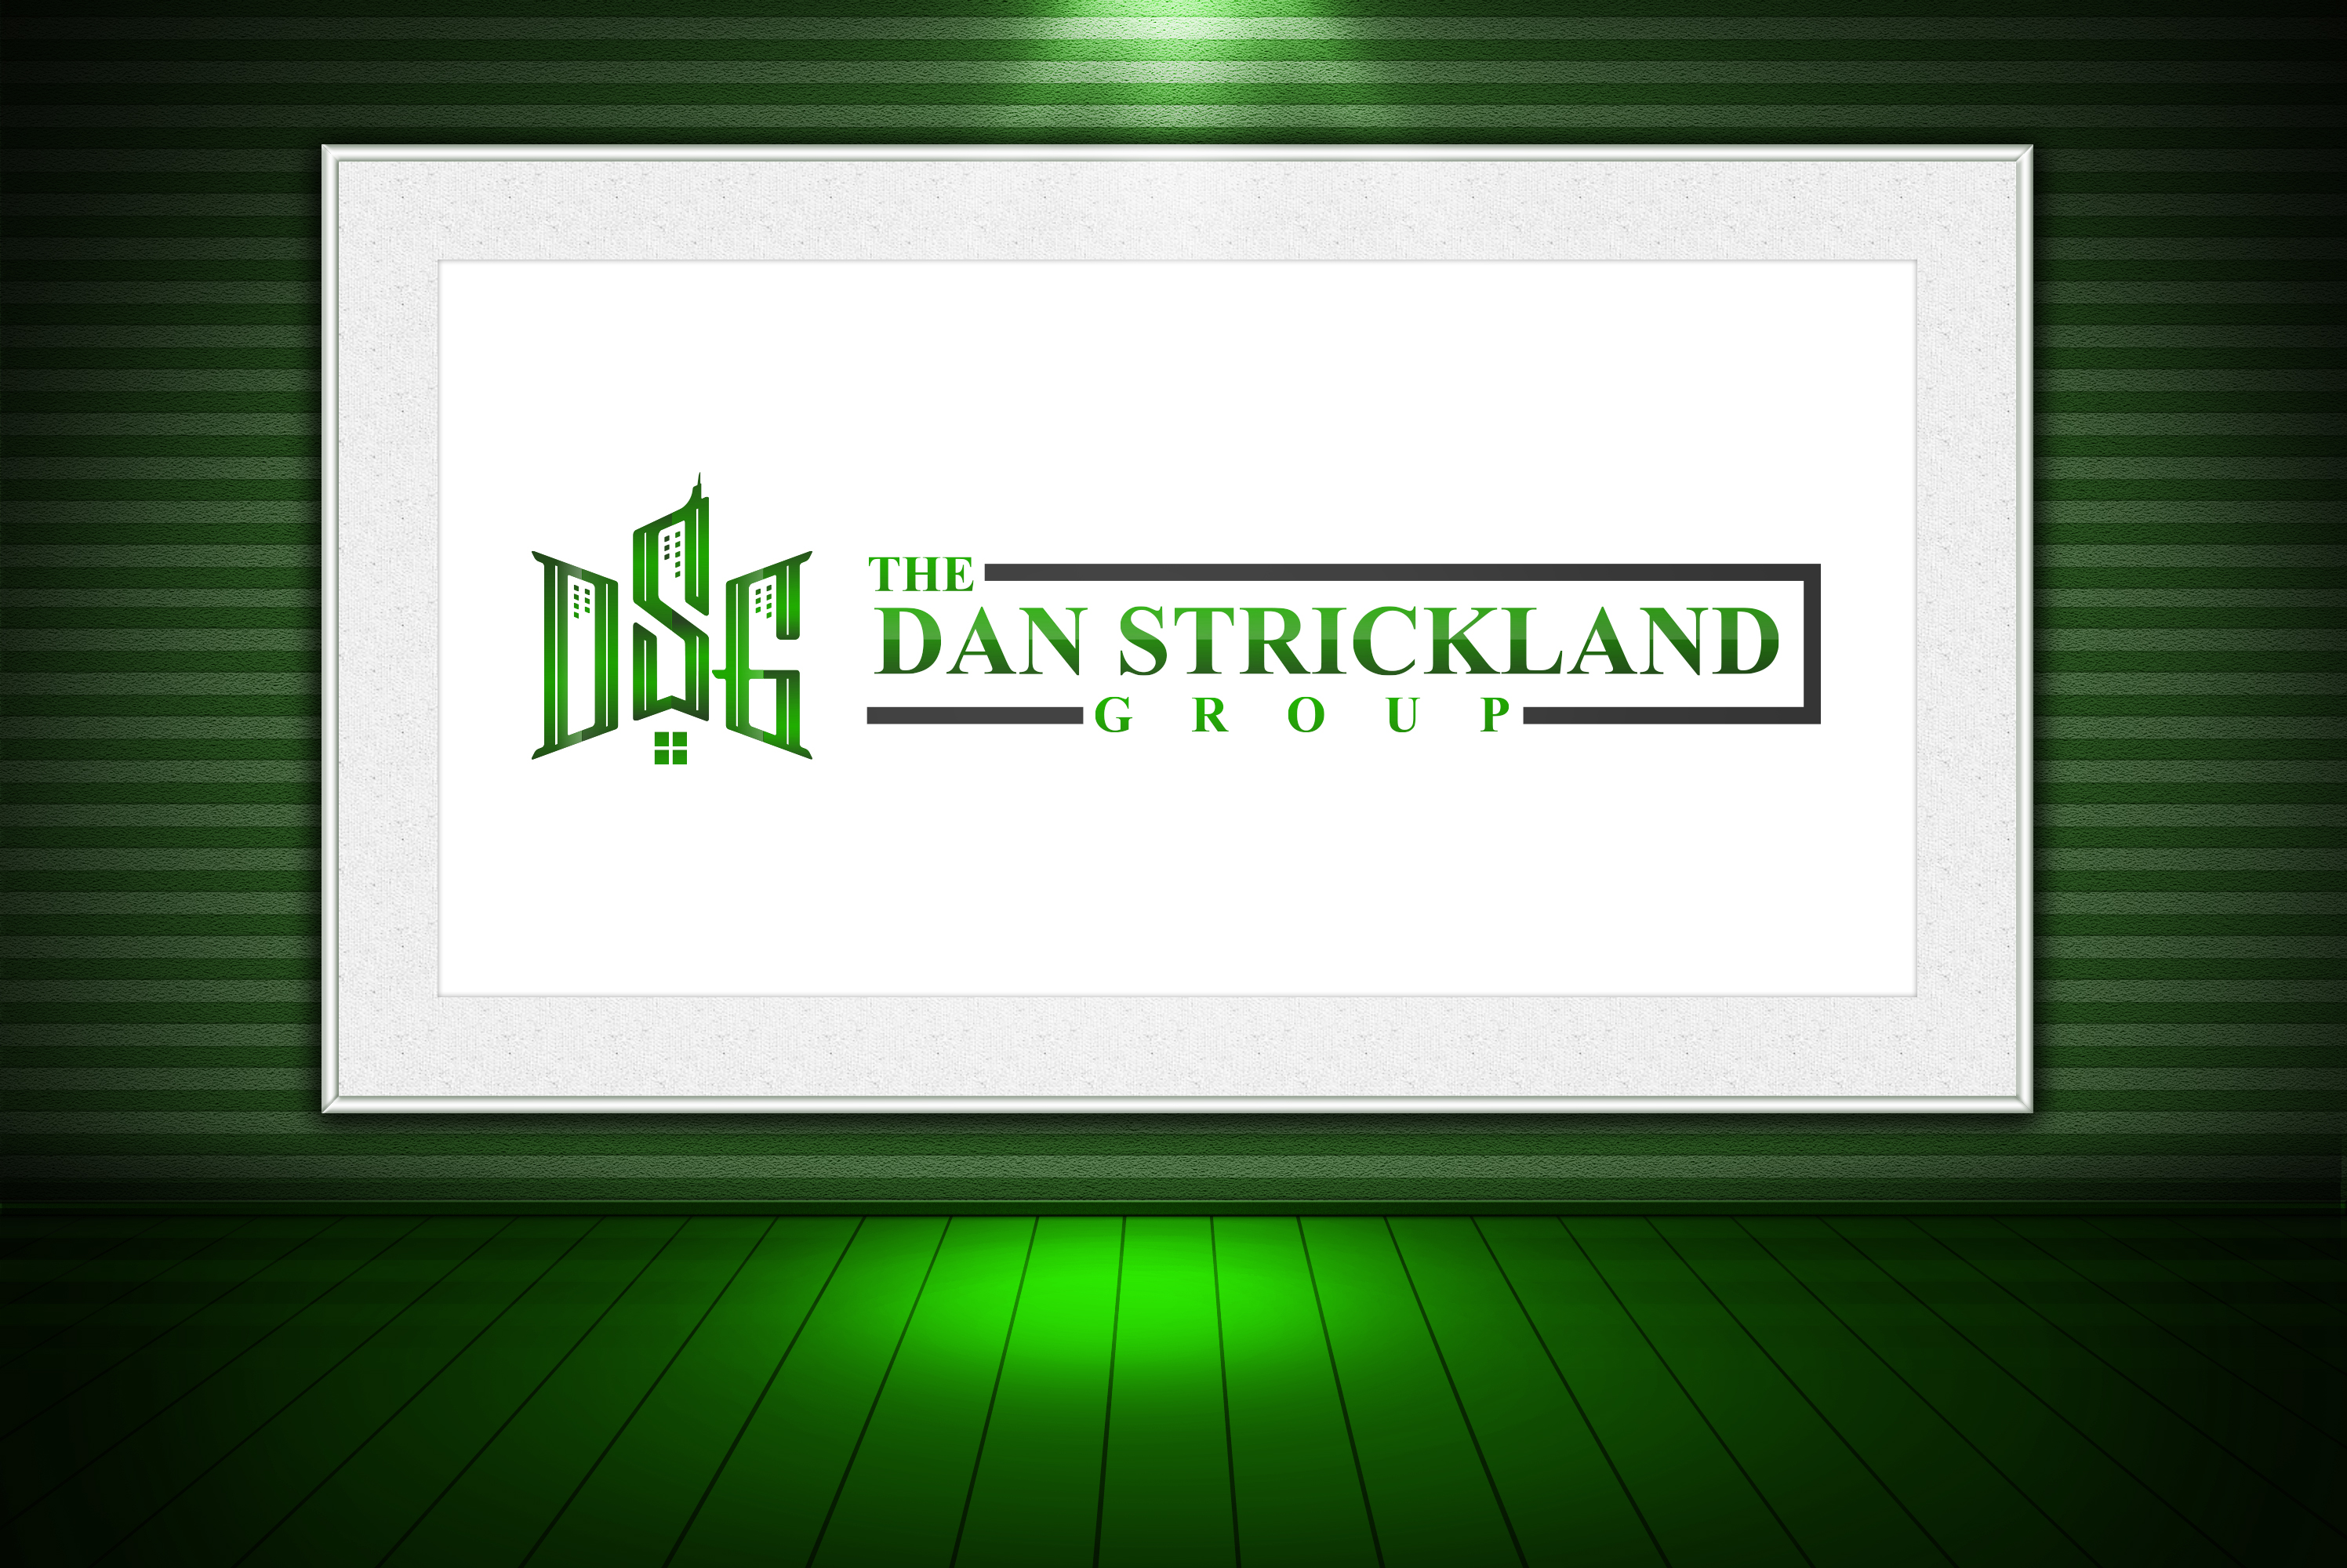 Logo Design by olii - Entry No. 332 in the Logo Design Contest Creative Logo Design for The Dan Strickland Group.